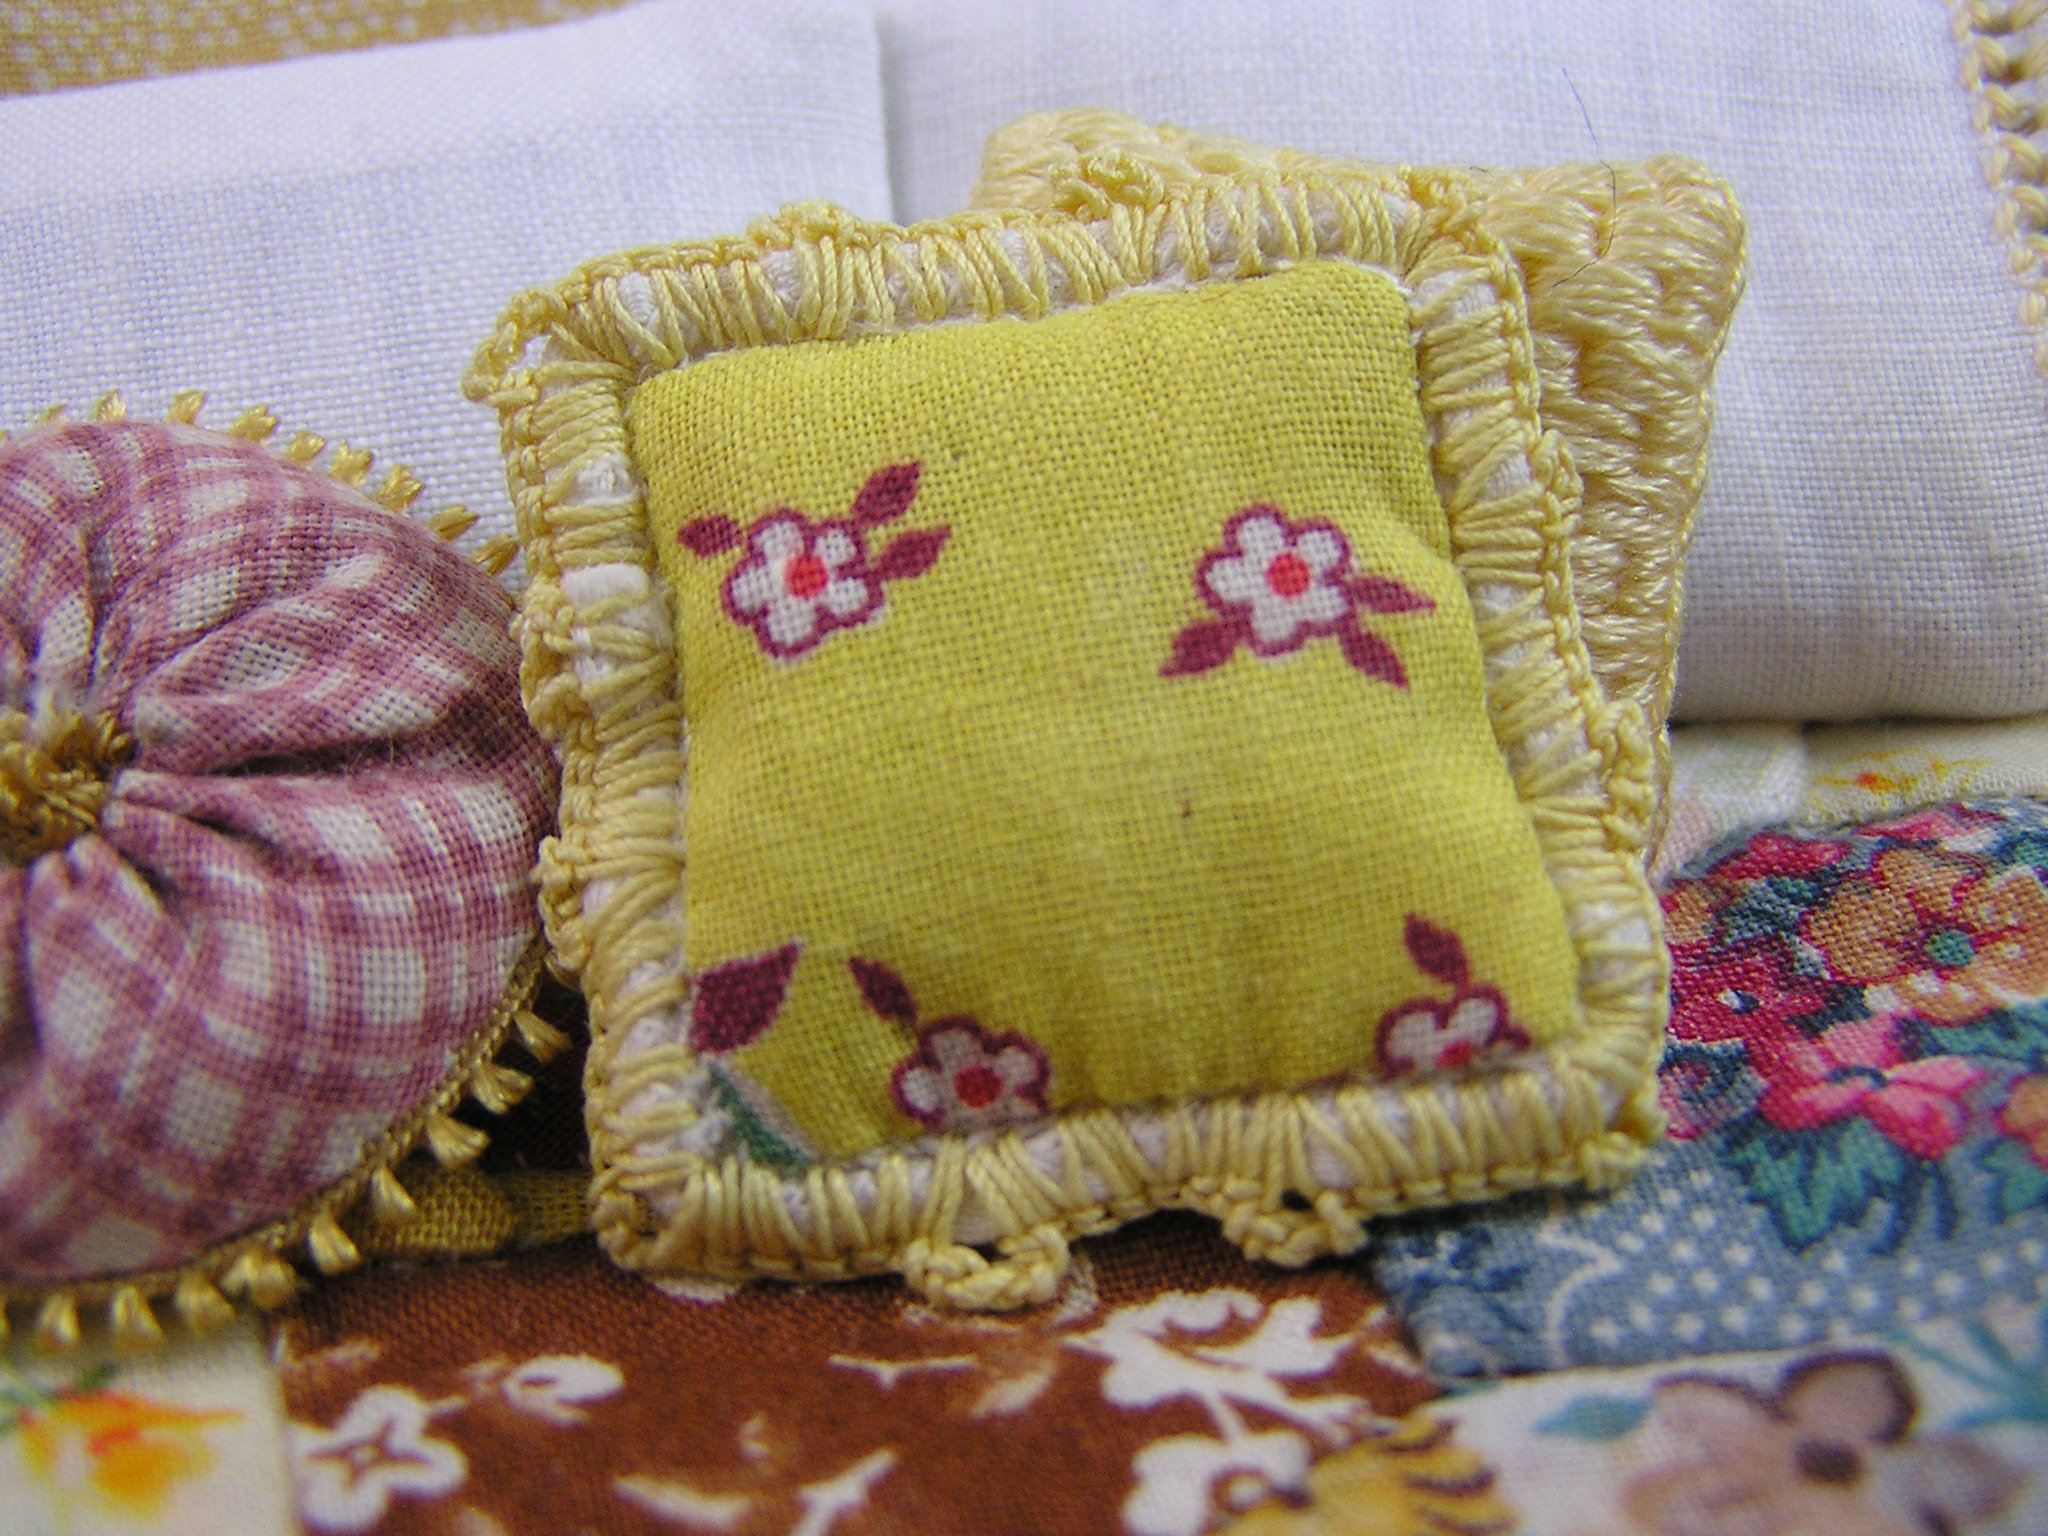 Crochet-trimmed Country Throw Pillow